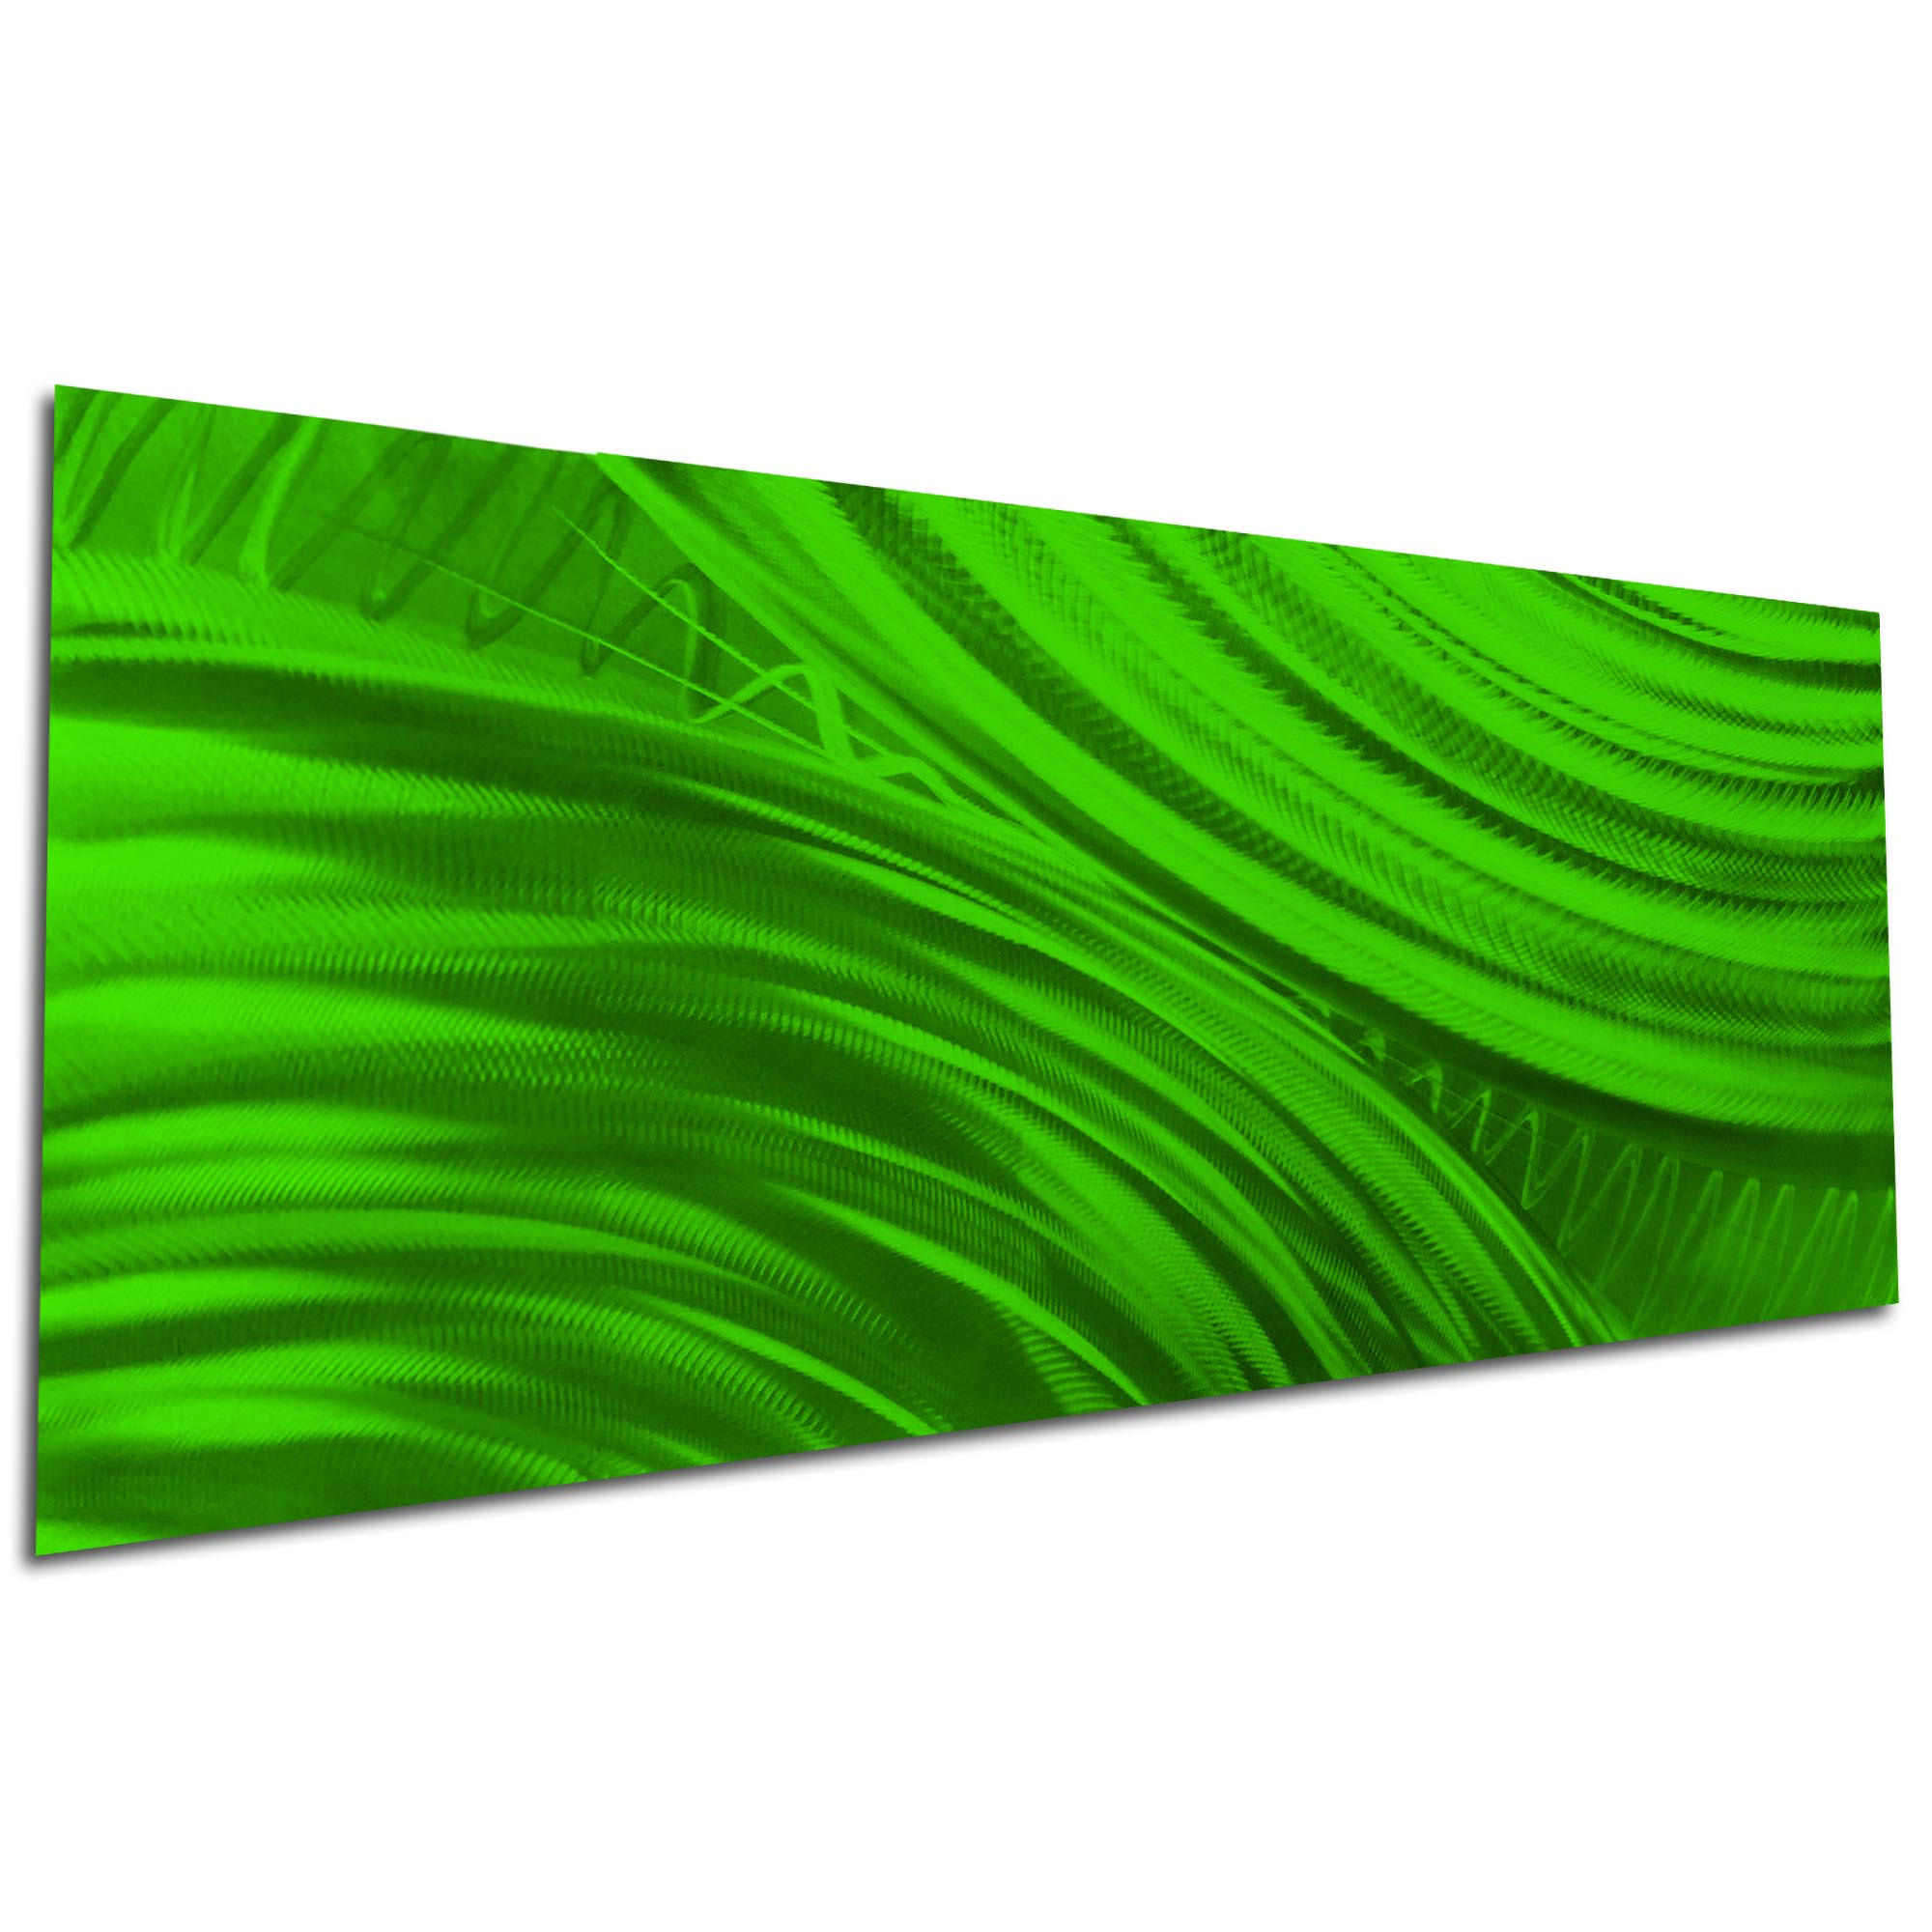 Moment of Impact Green by Helena Martin - Original Abstract Art on Ground and Painted Metal - Image 3